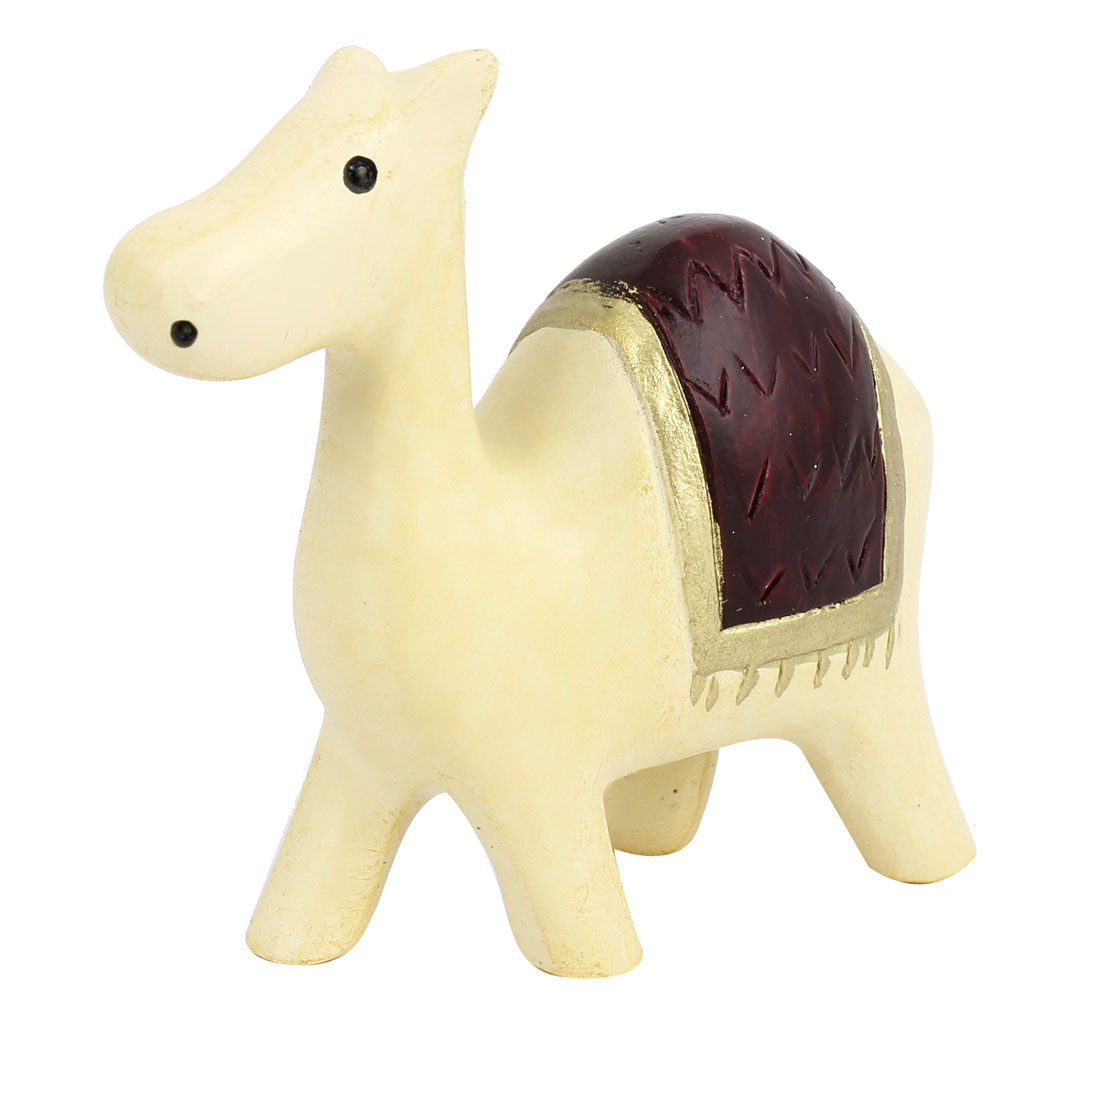 Tabletop Adorn Handmade Craft Camel Shape Decoration Beige